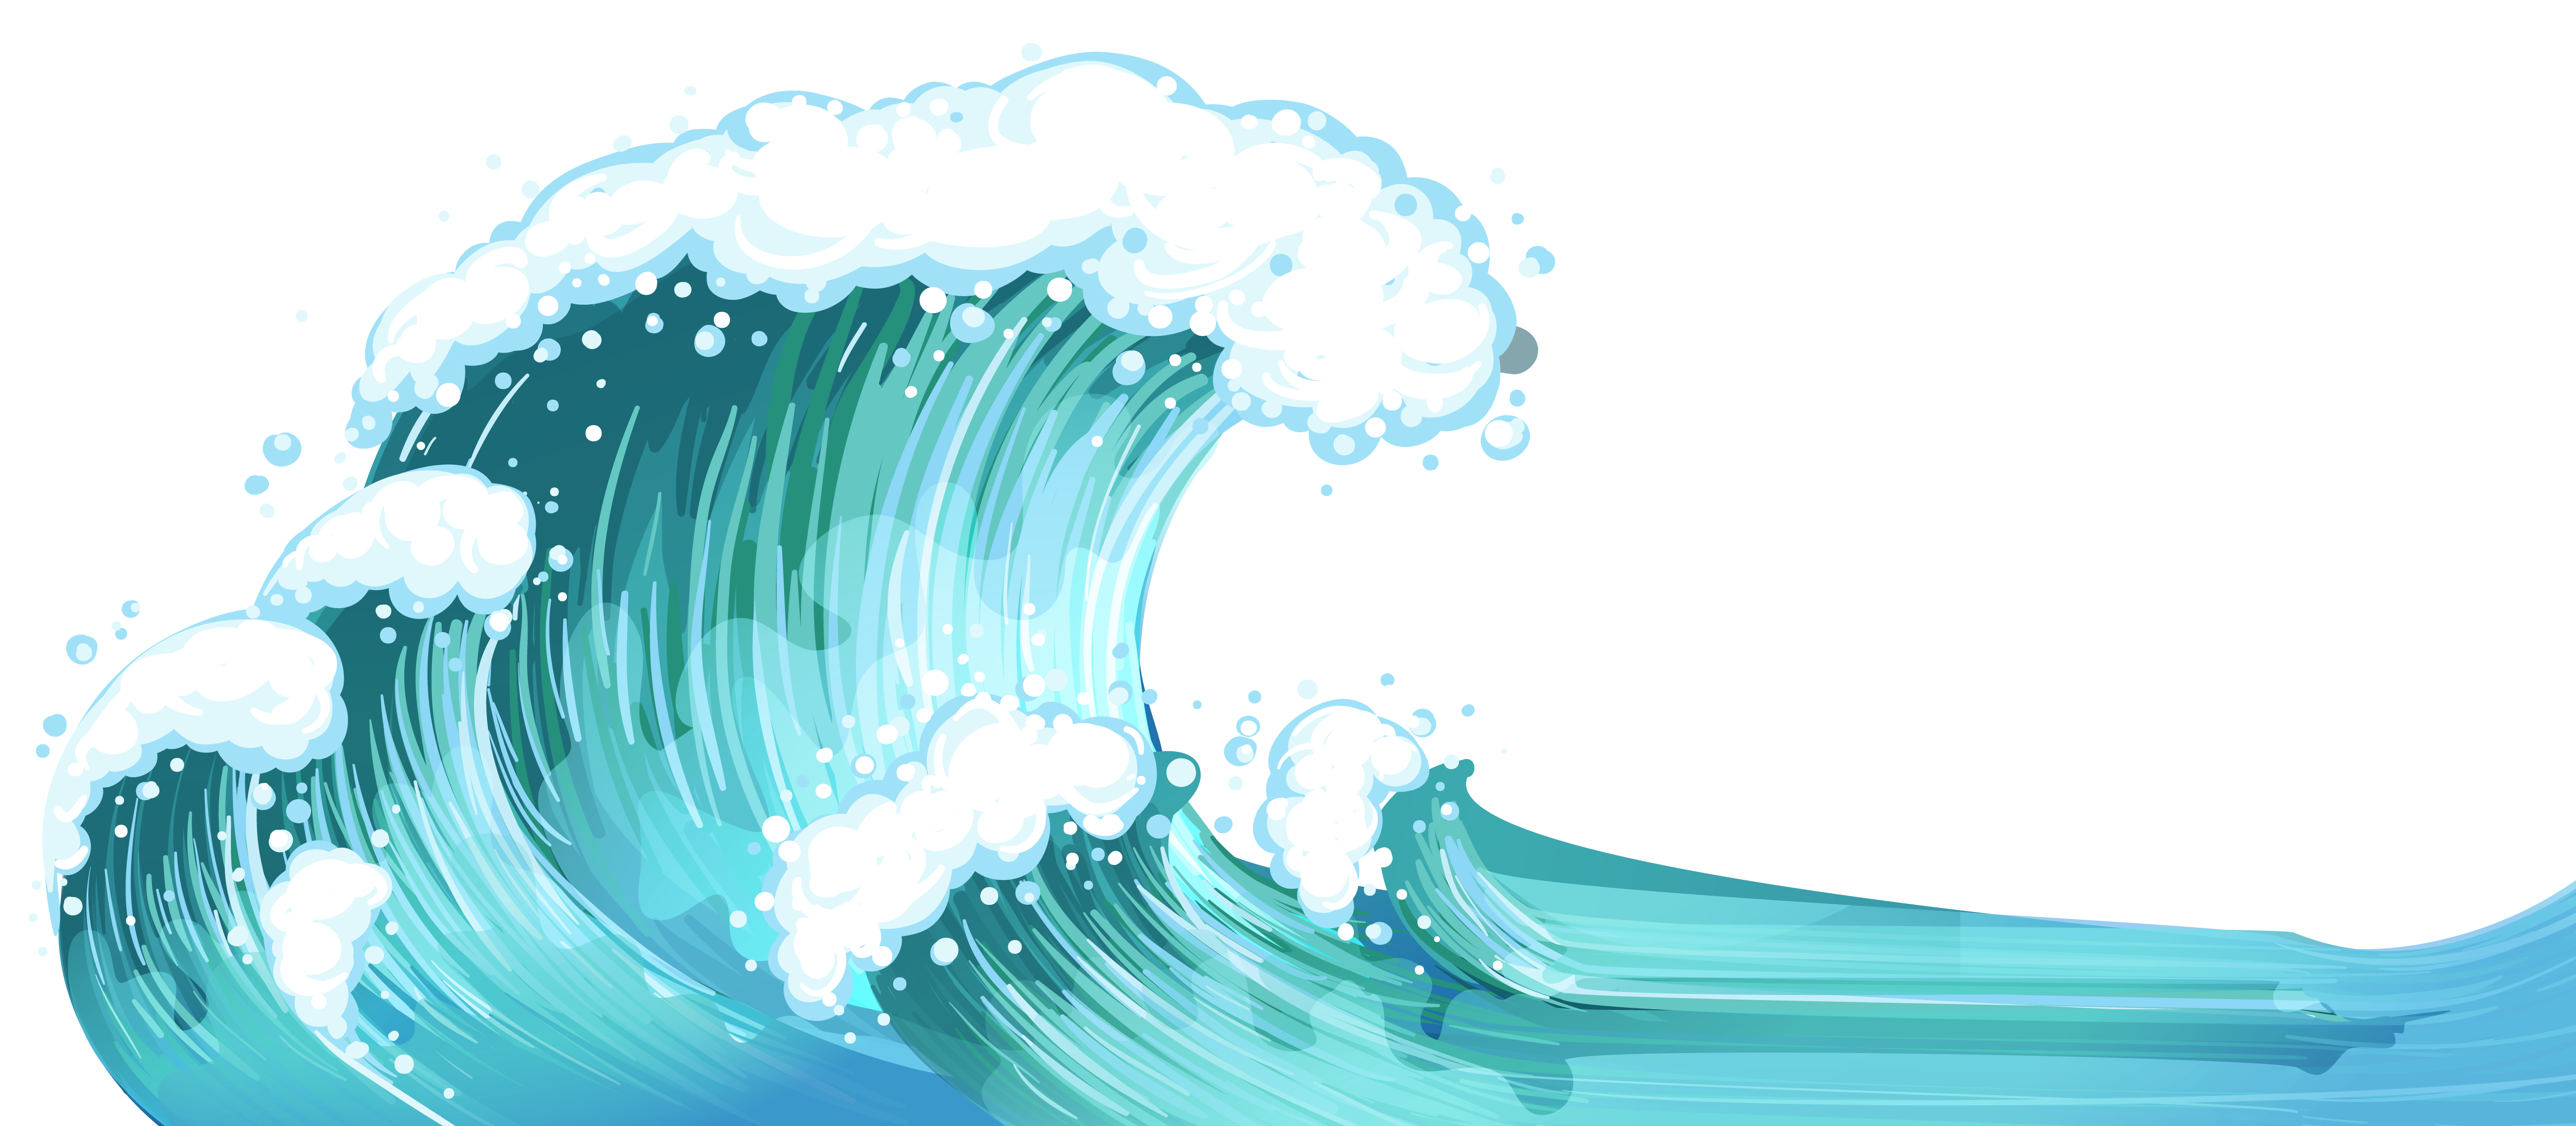 Ocean wave vector png. Waves clip art simple